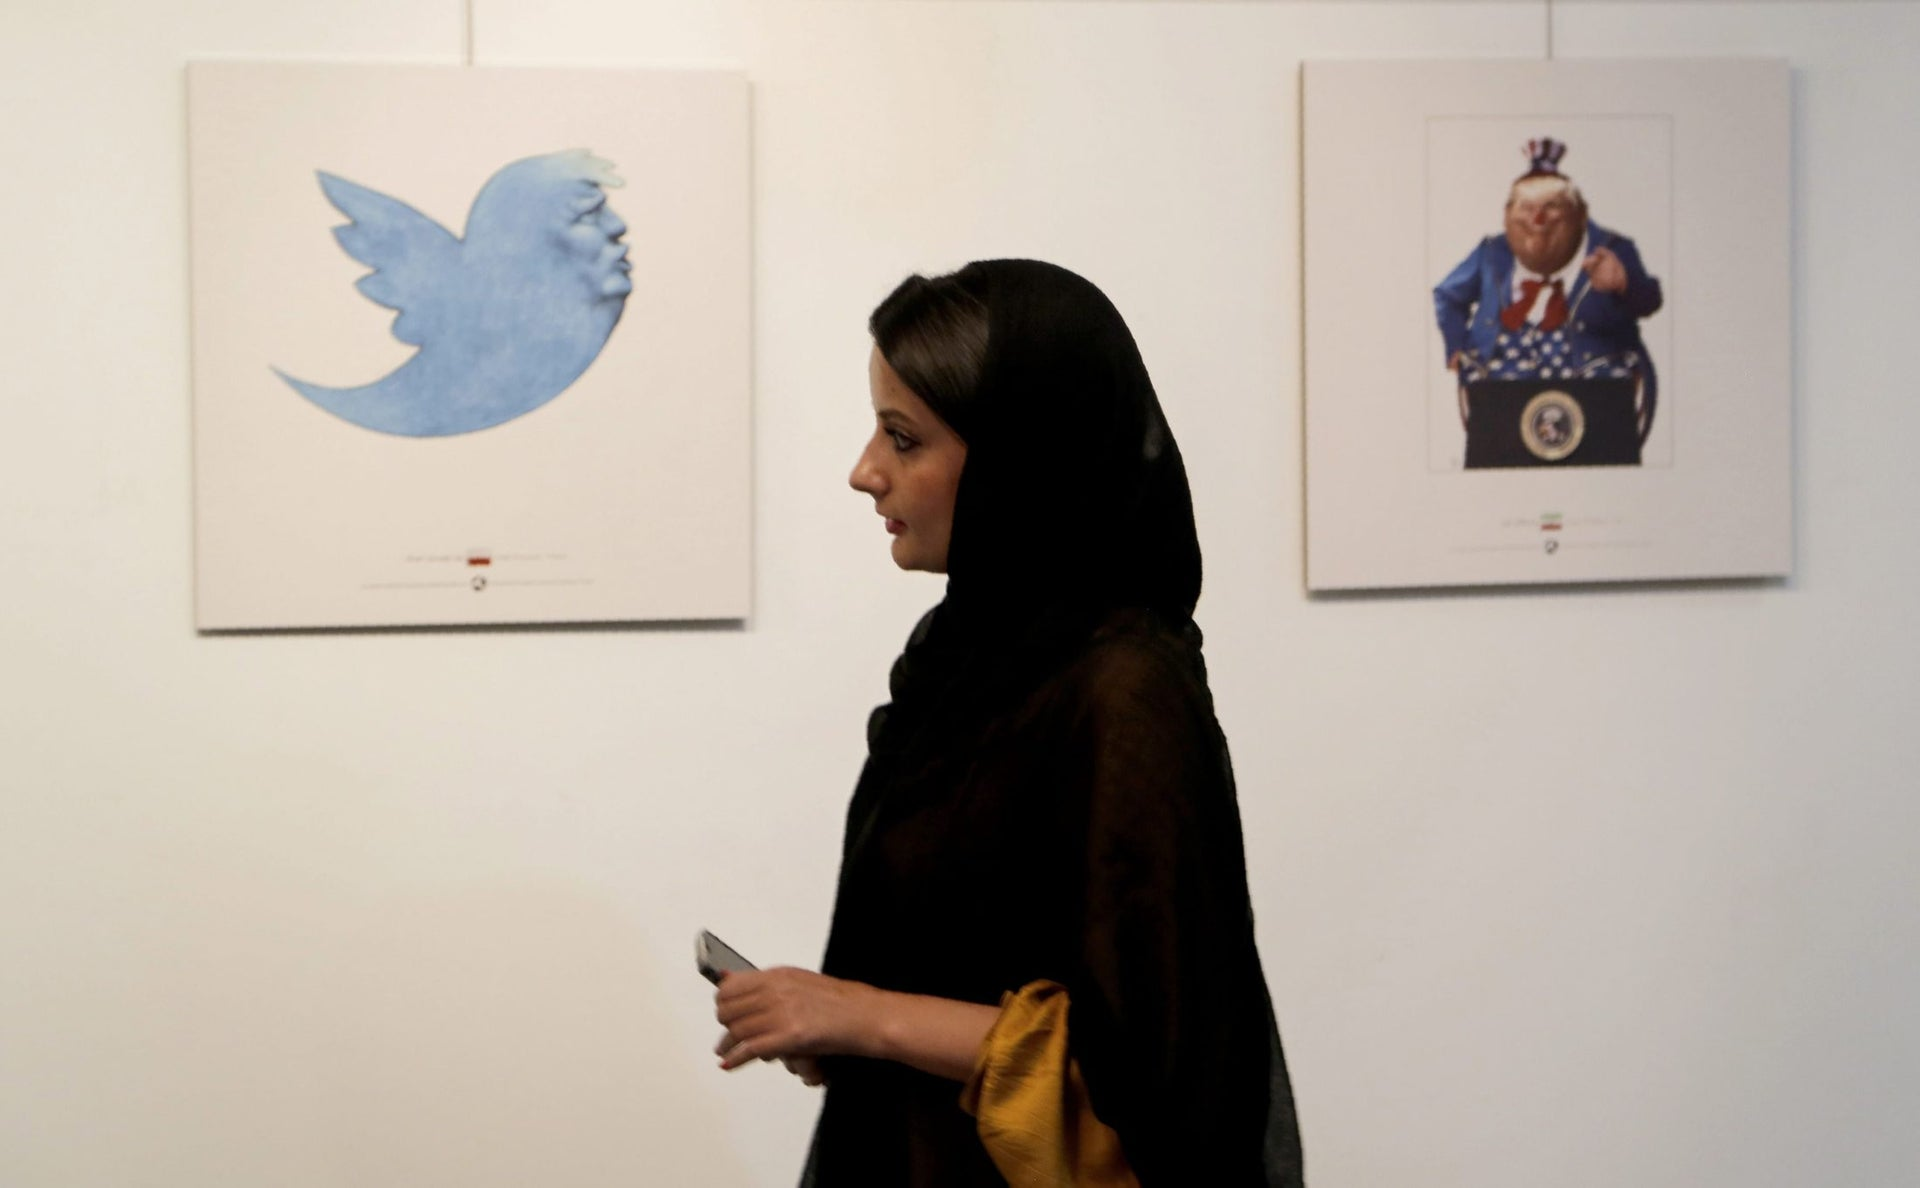 An Iranian woman looks at cartoons of US President Donald J. Trump at an exhibition of the Islamic Republic's 2017 International Trumpism cartoon and caricature contest, in the capital Tehran on July 3, 2017.